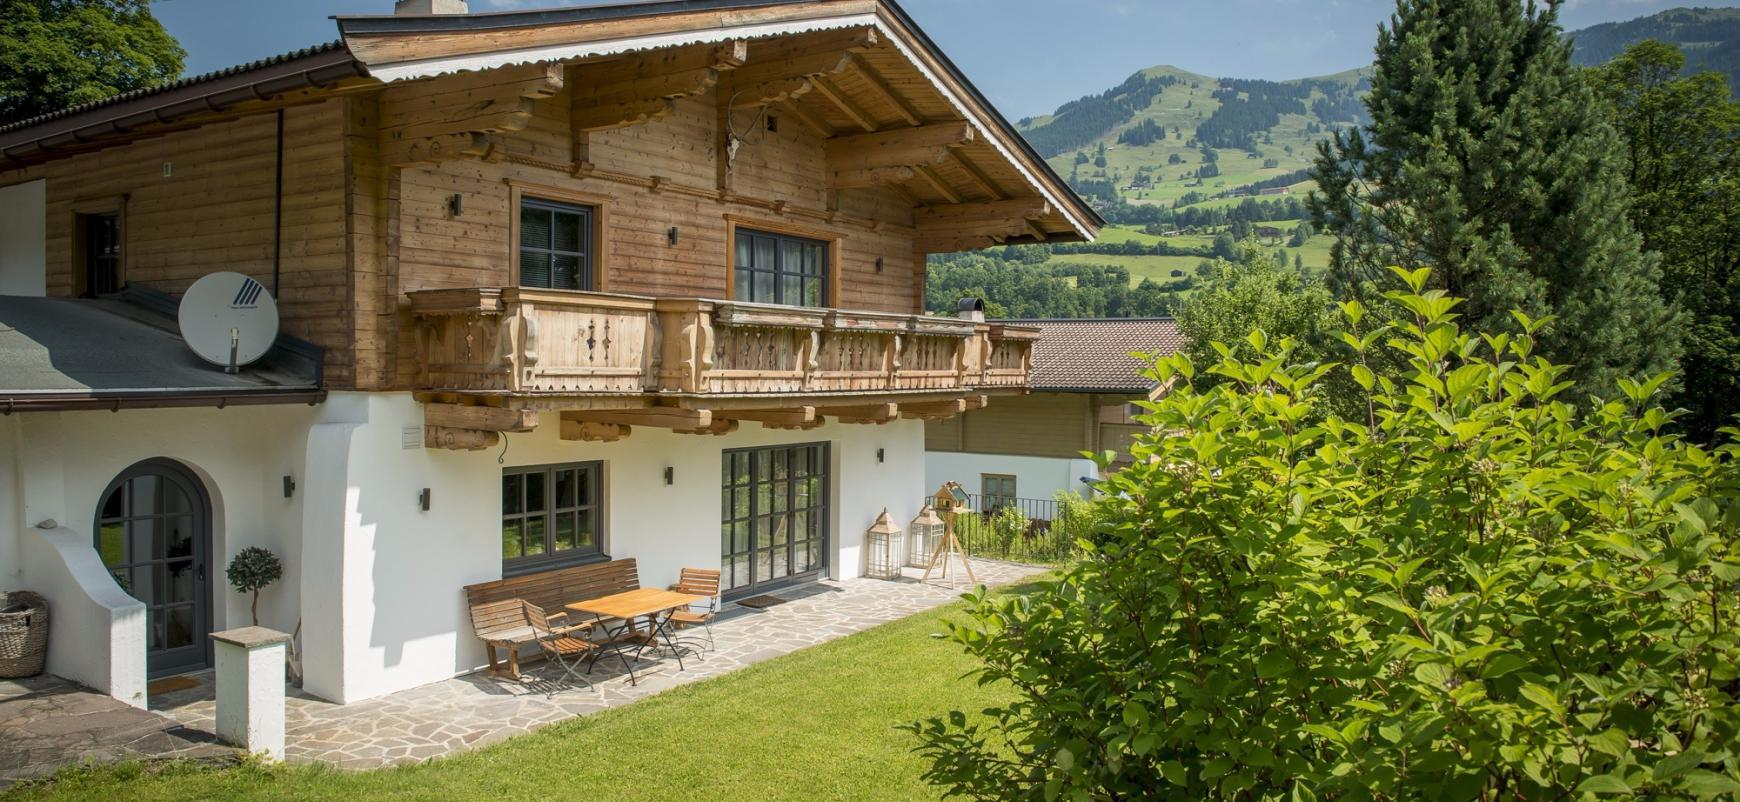 Charming chalet in Aurach bei Kitzbuhel For Sale - Austria - Tirol